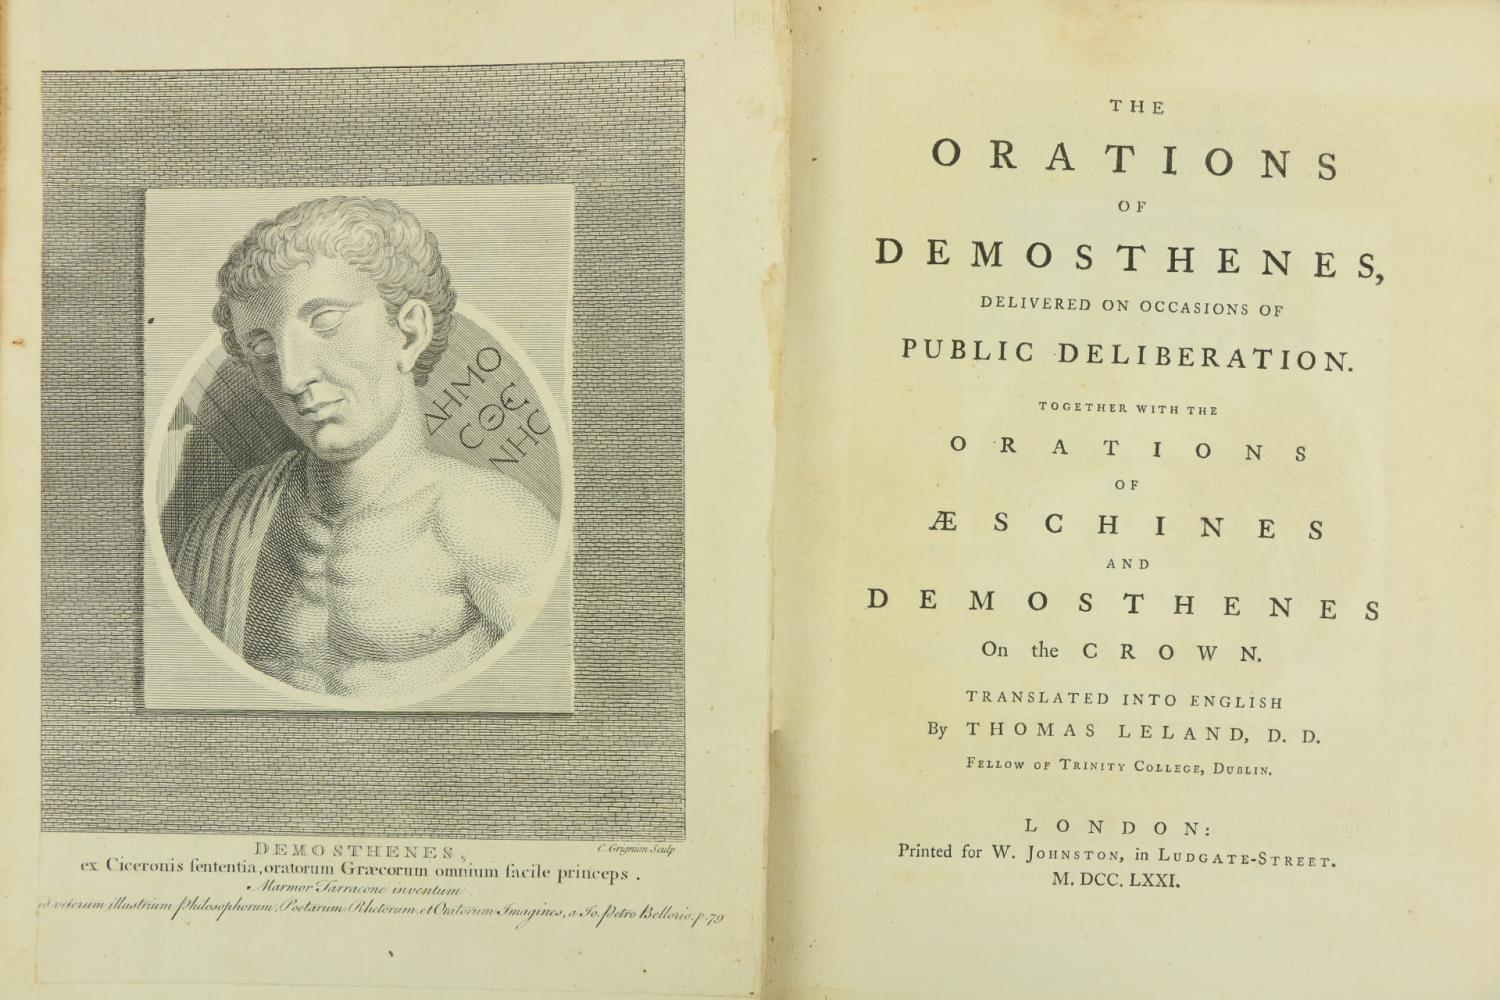 Leland (Thos.) T.C.D. trans.ÿÿThe Orations of Demosthenes, Delivered on Occasions of Public - Image 2 of 2